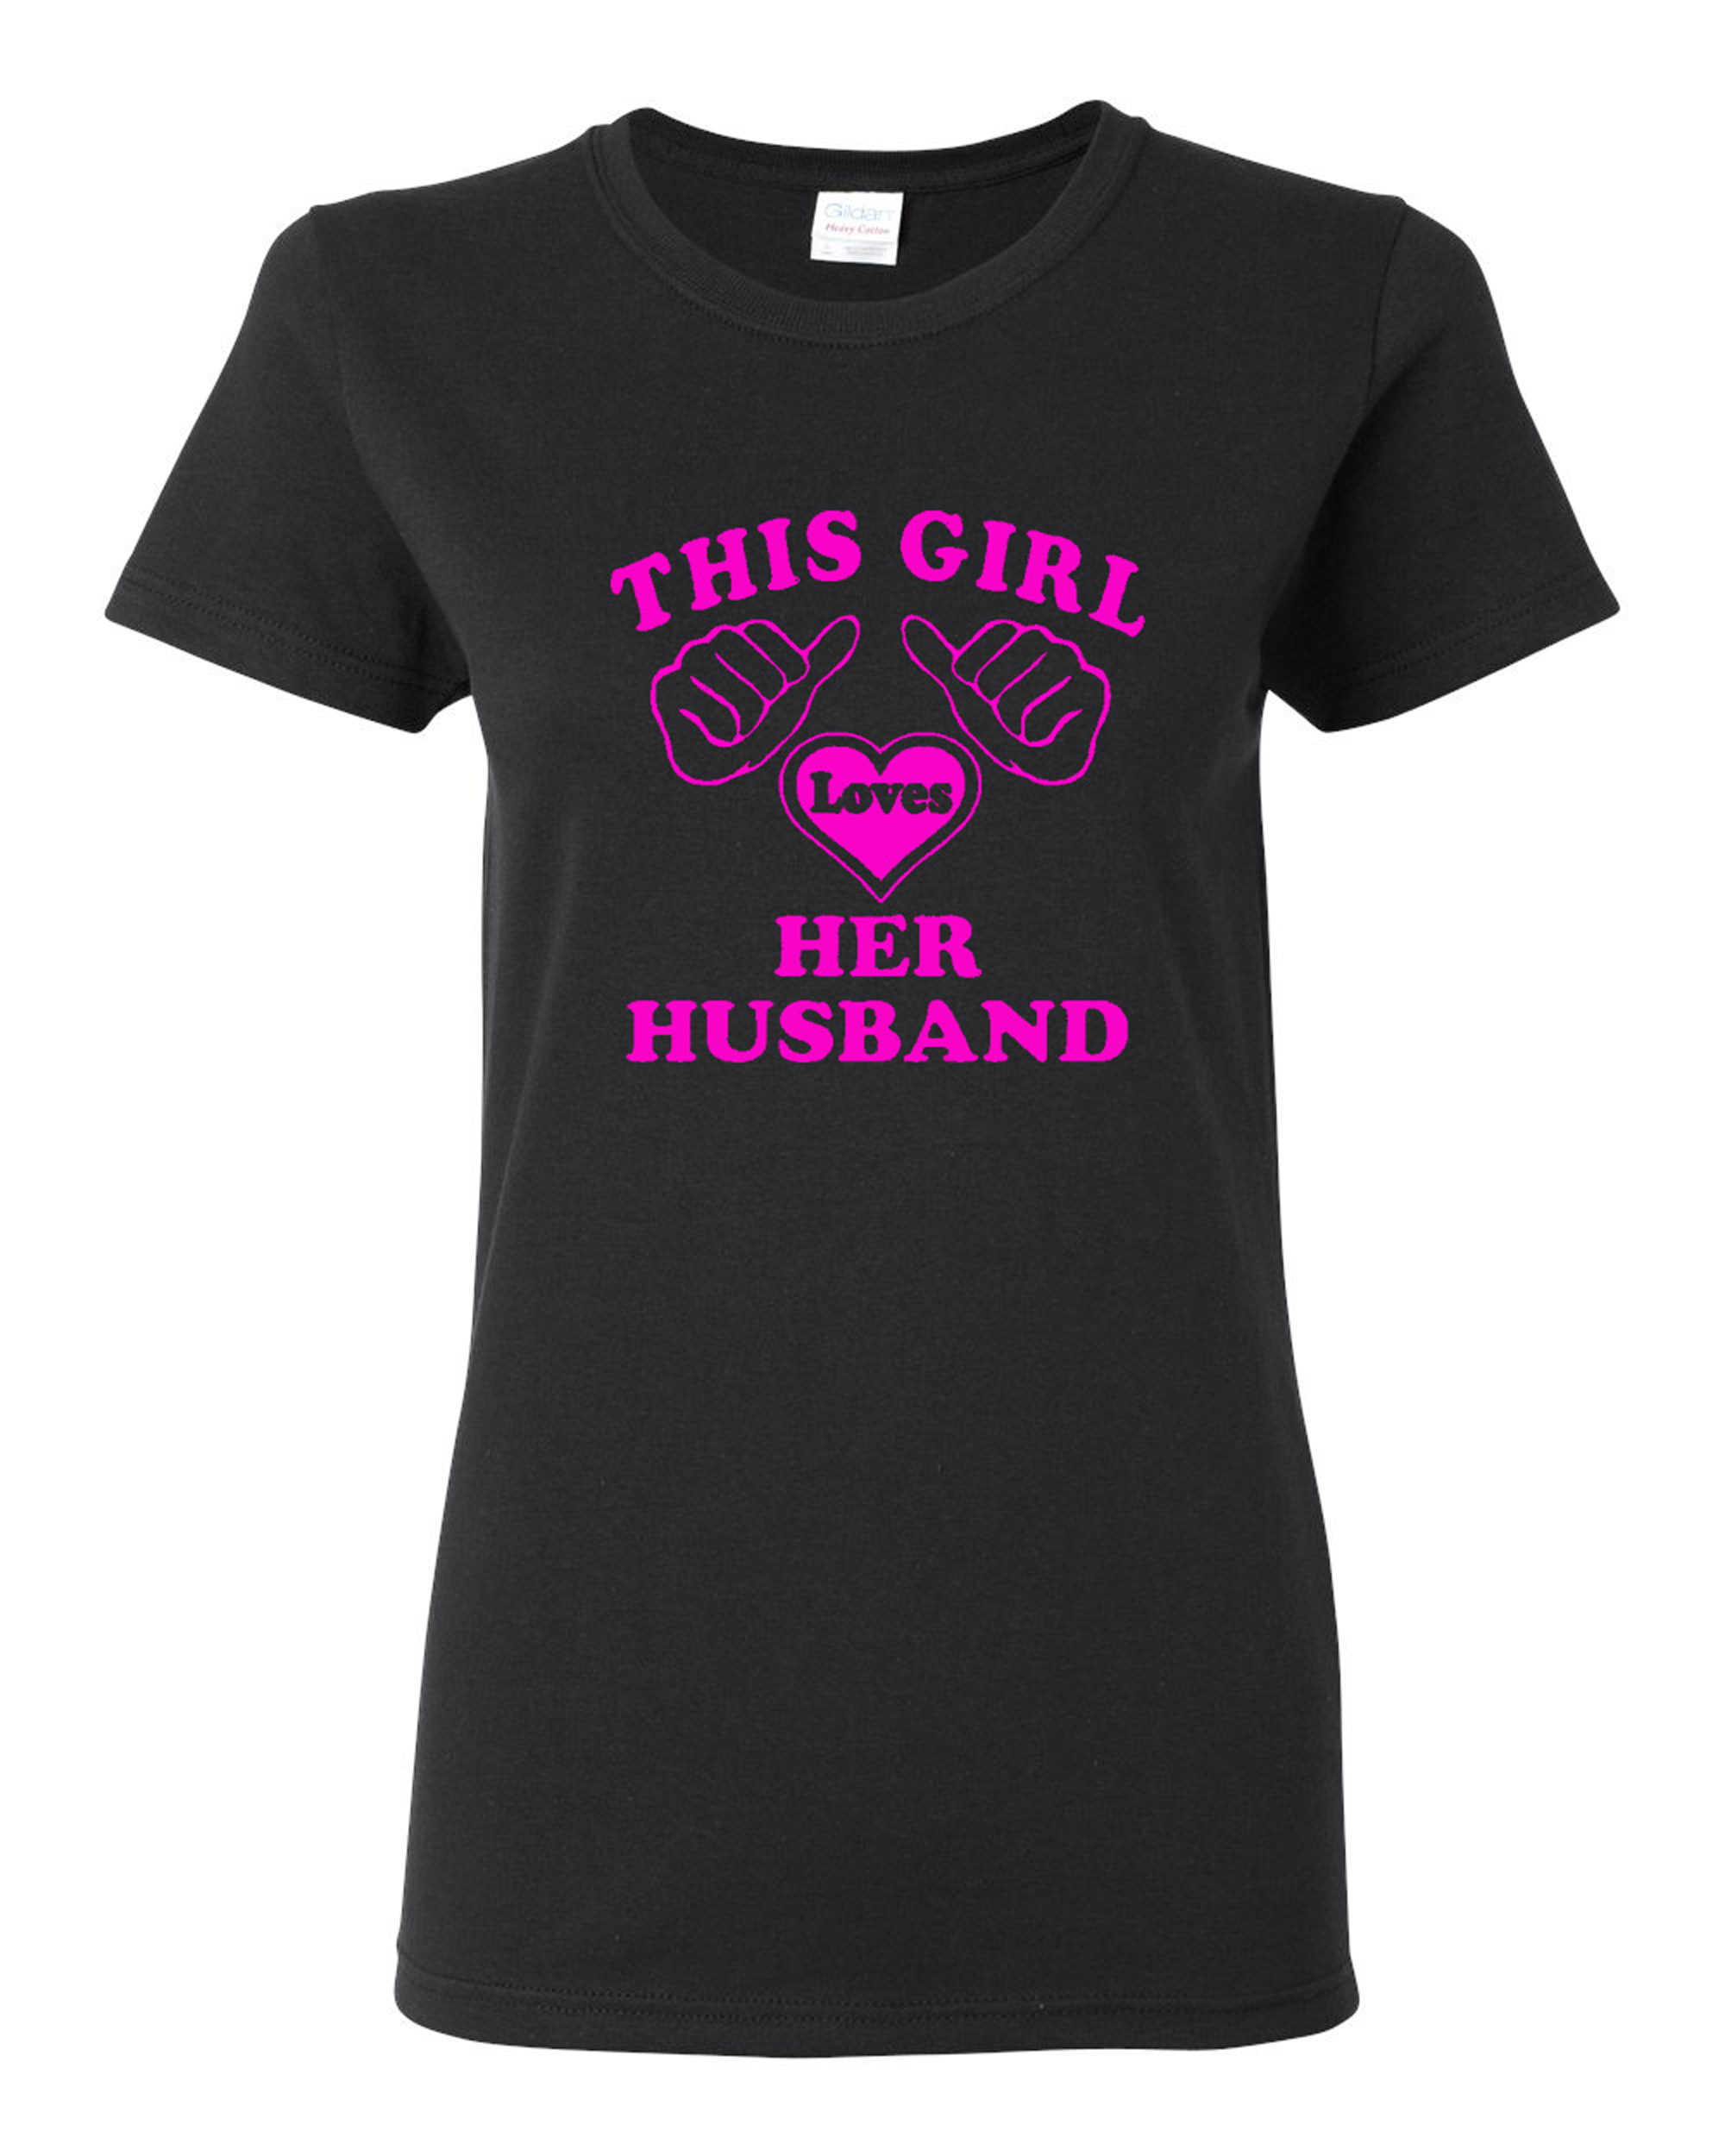 Ladies This Girl Loves Her Husband T-Shirt Tee